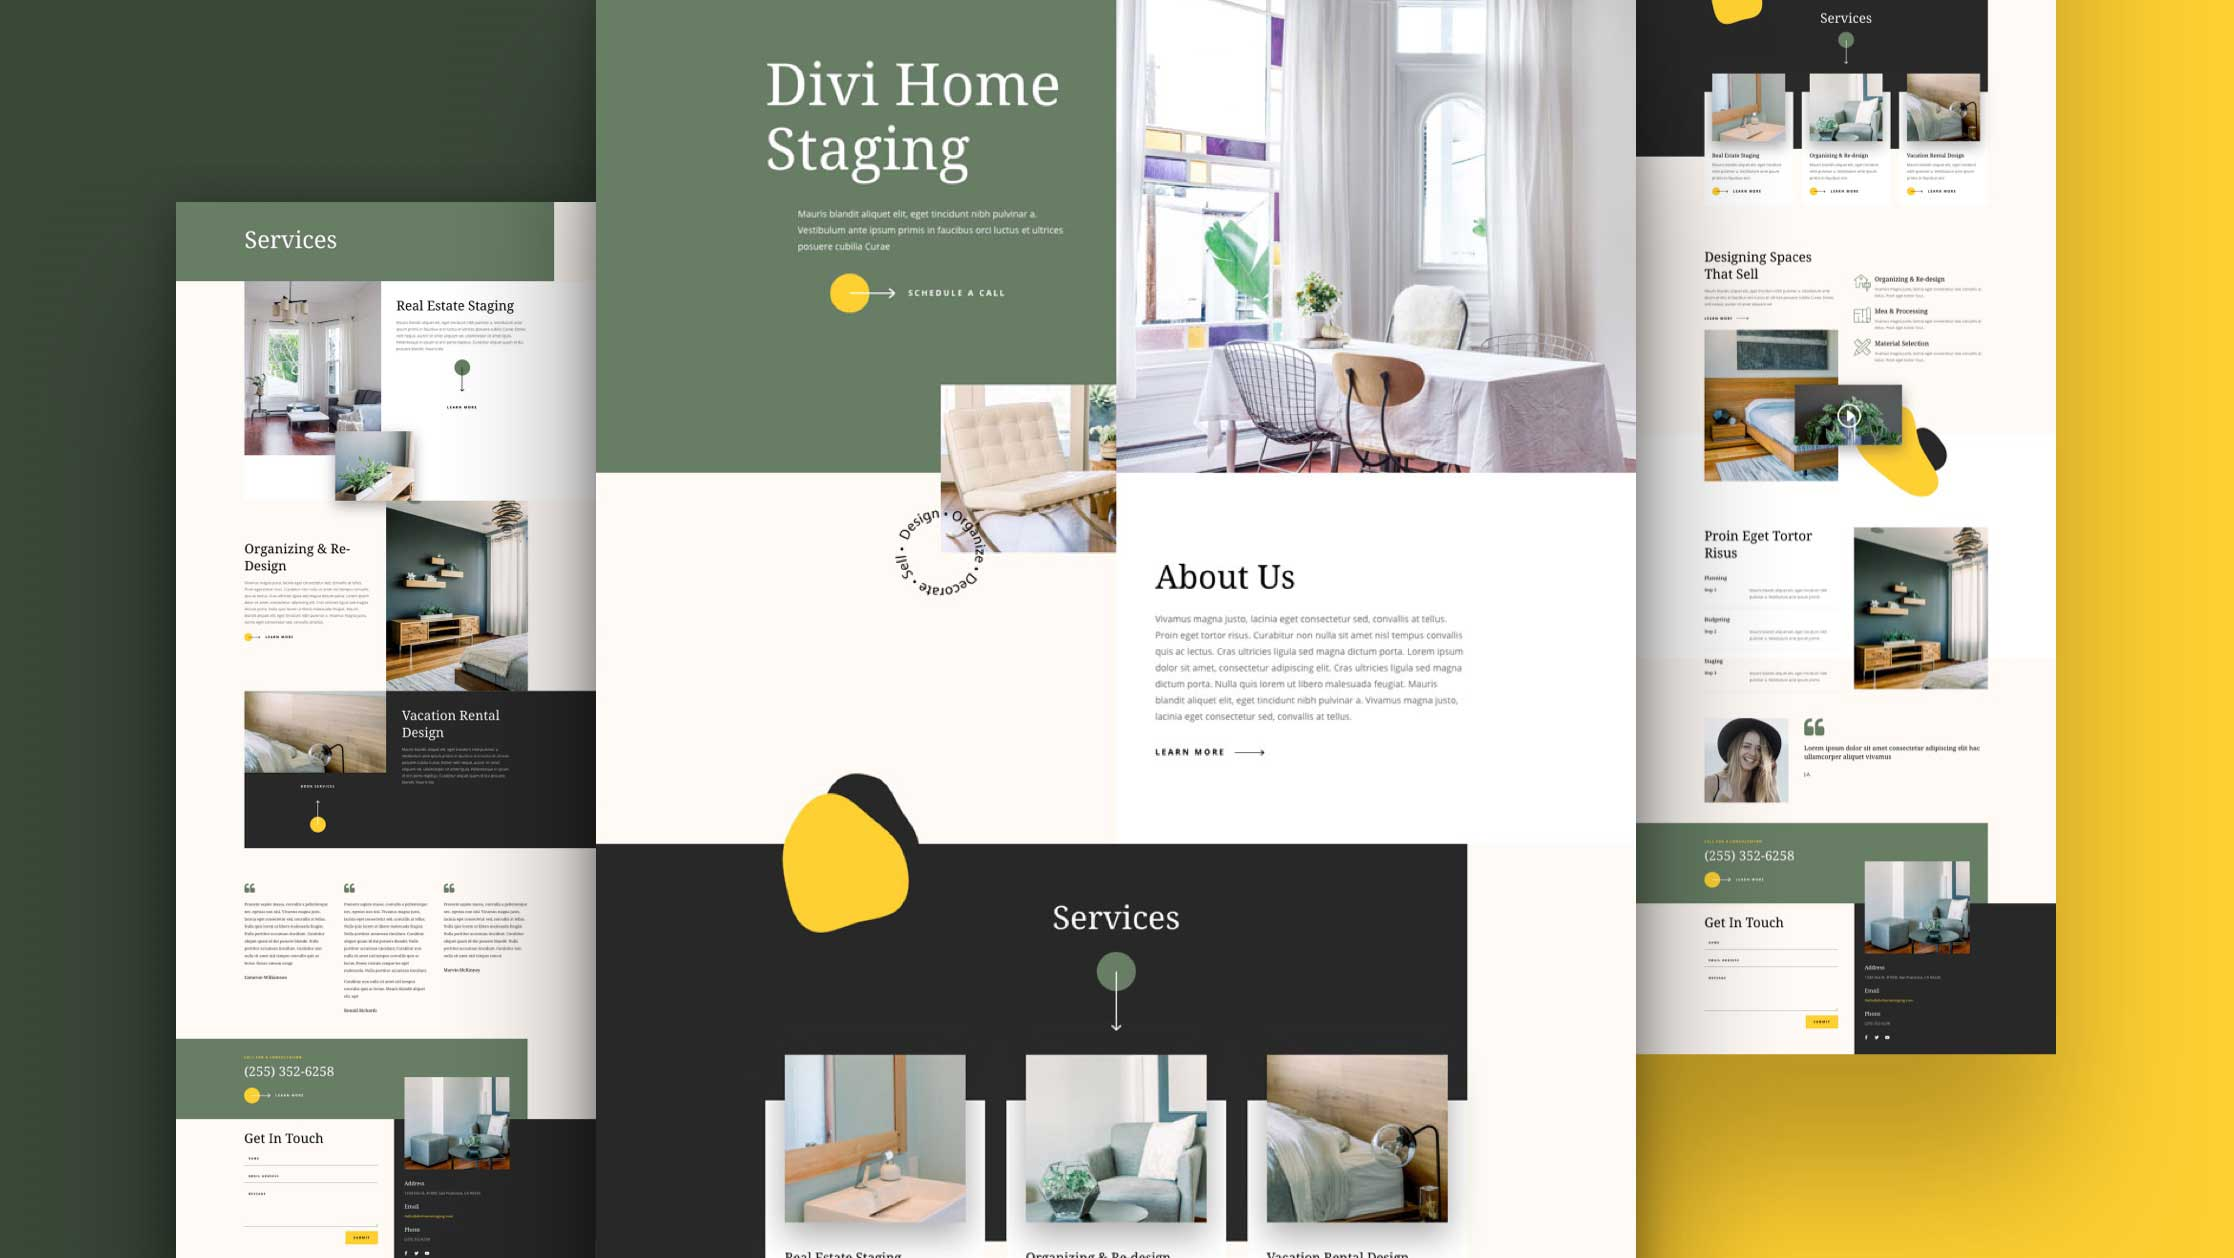 Get a FREE Home Staging Layout Pack for Divi